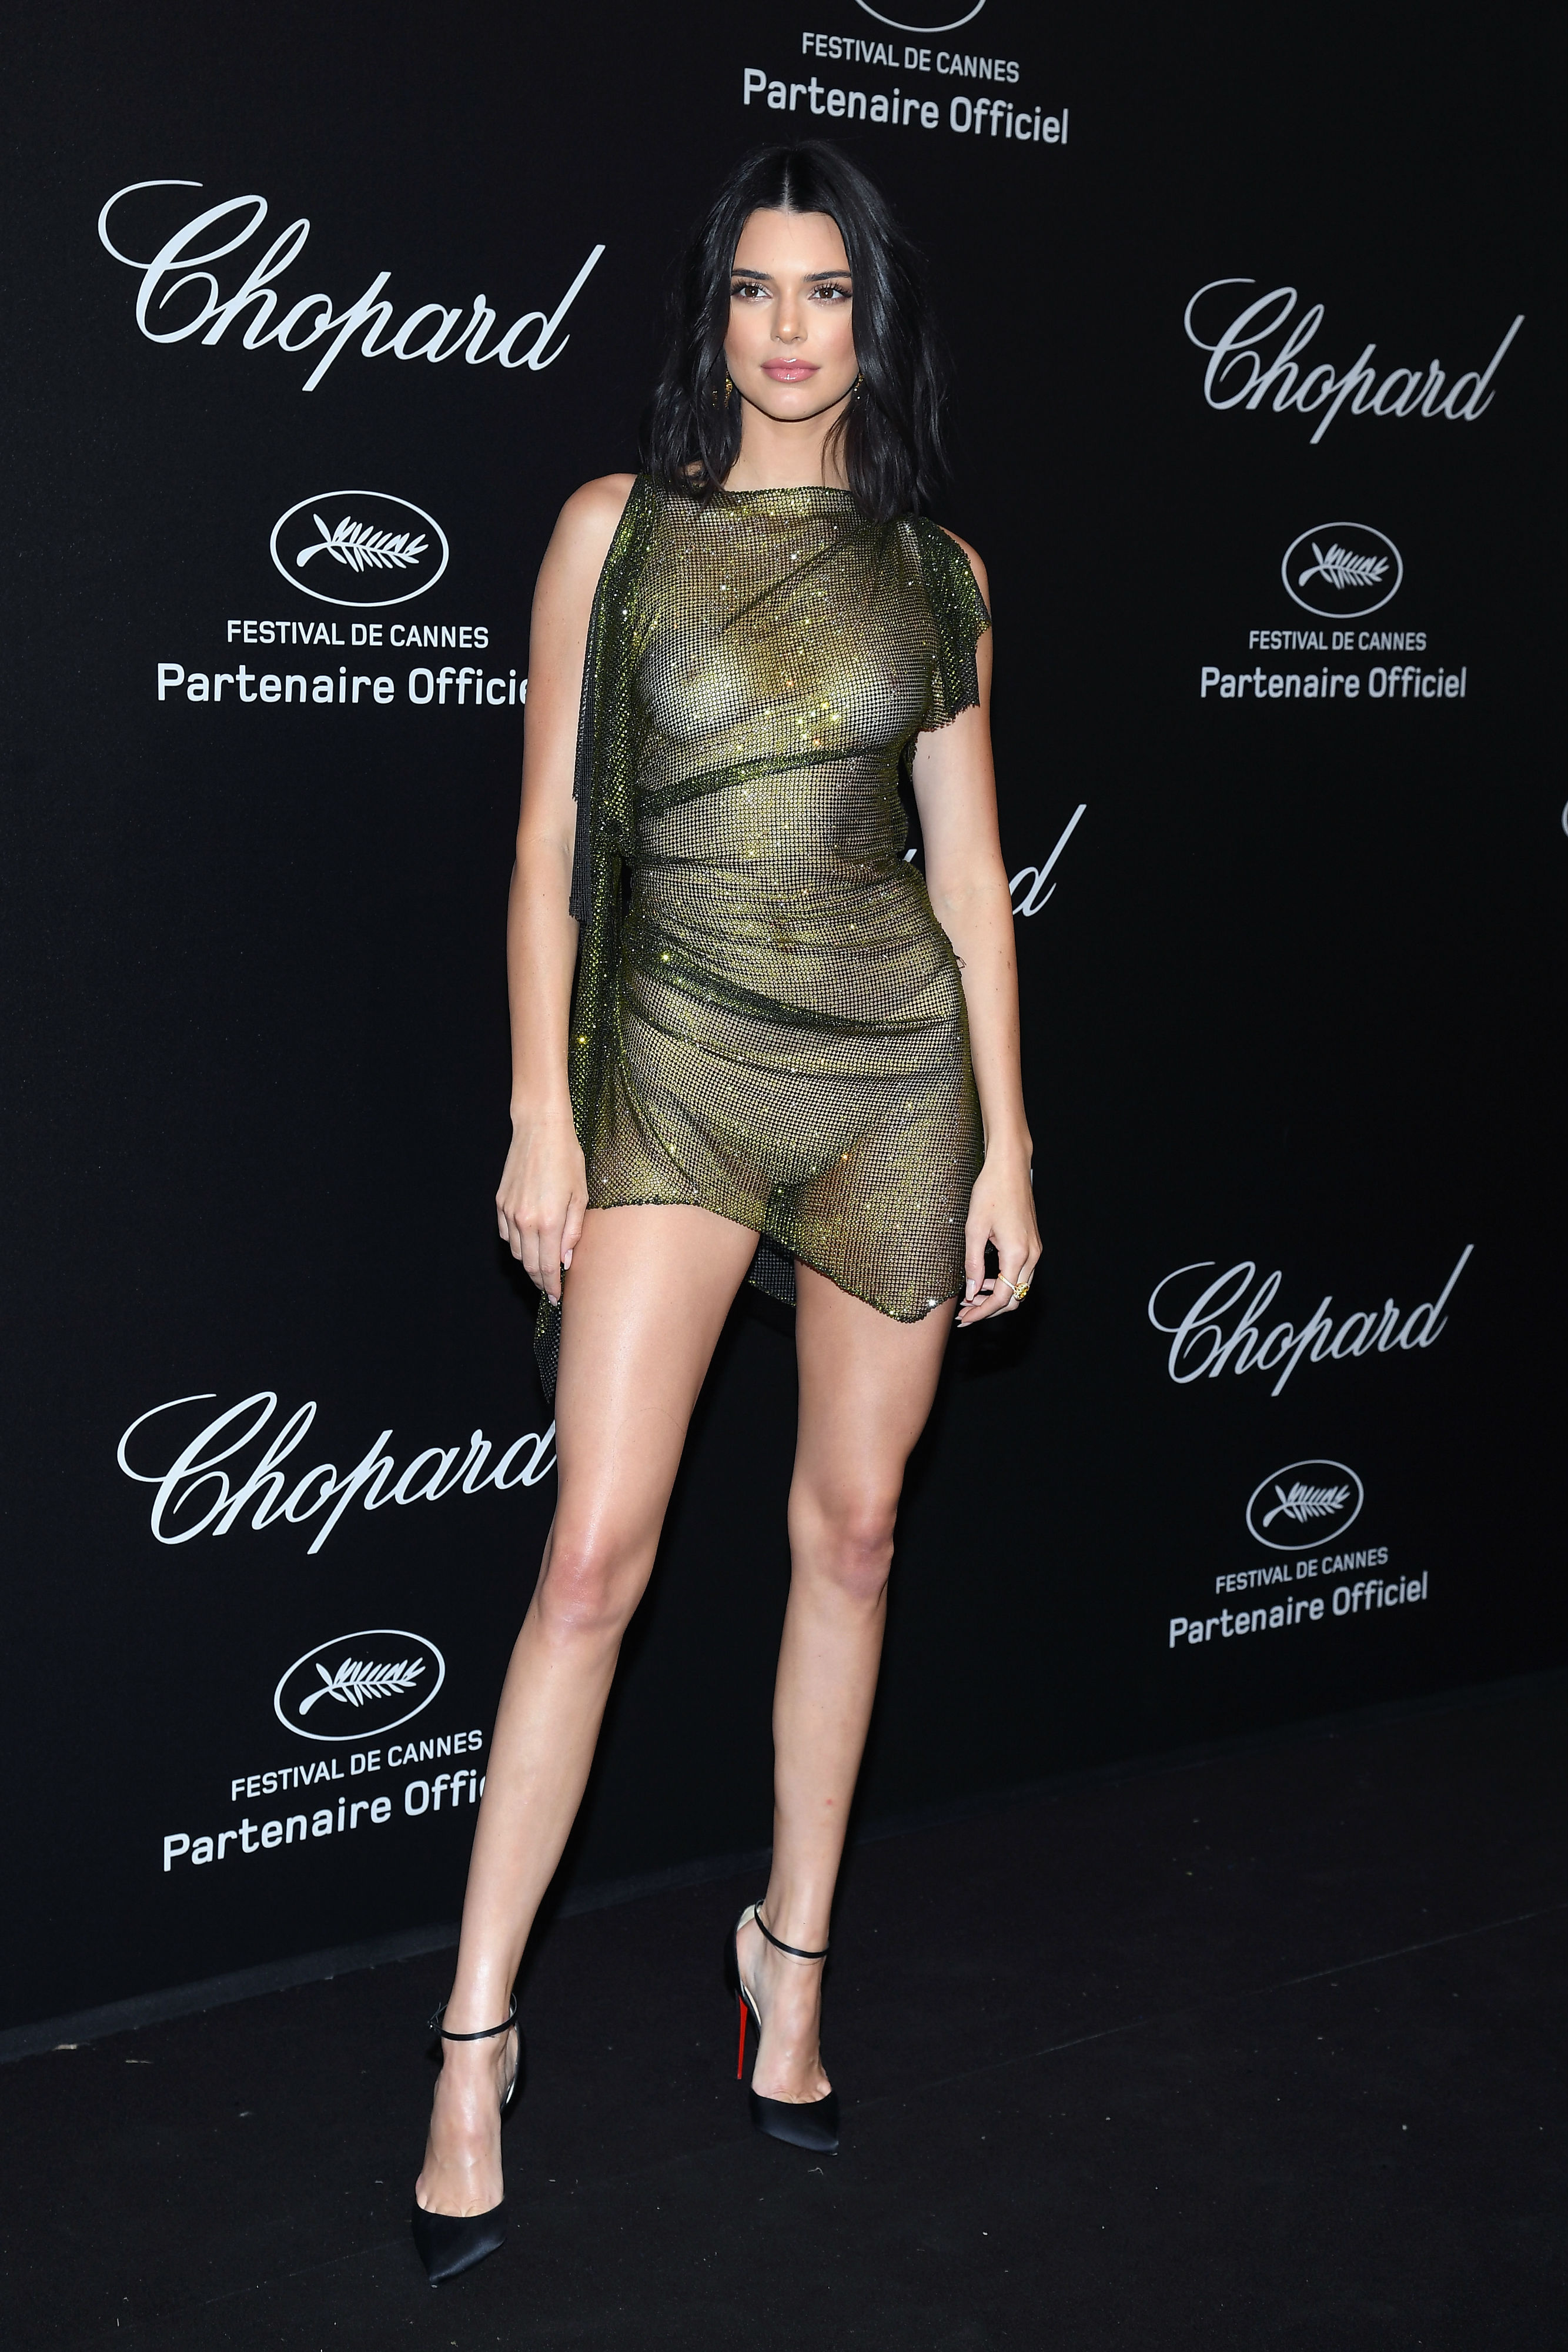 Kendall Jenner speaks out on decision to go braless in a see-through dress: 'oops.'